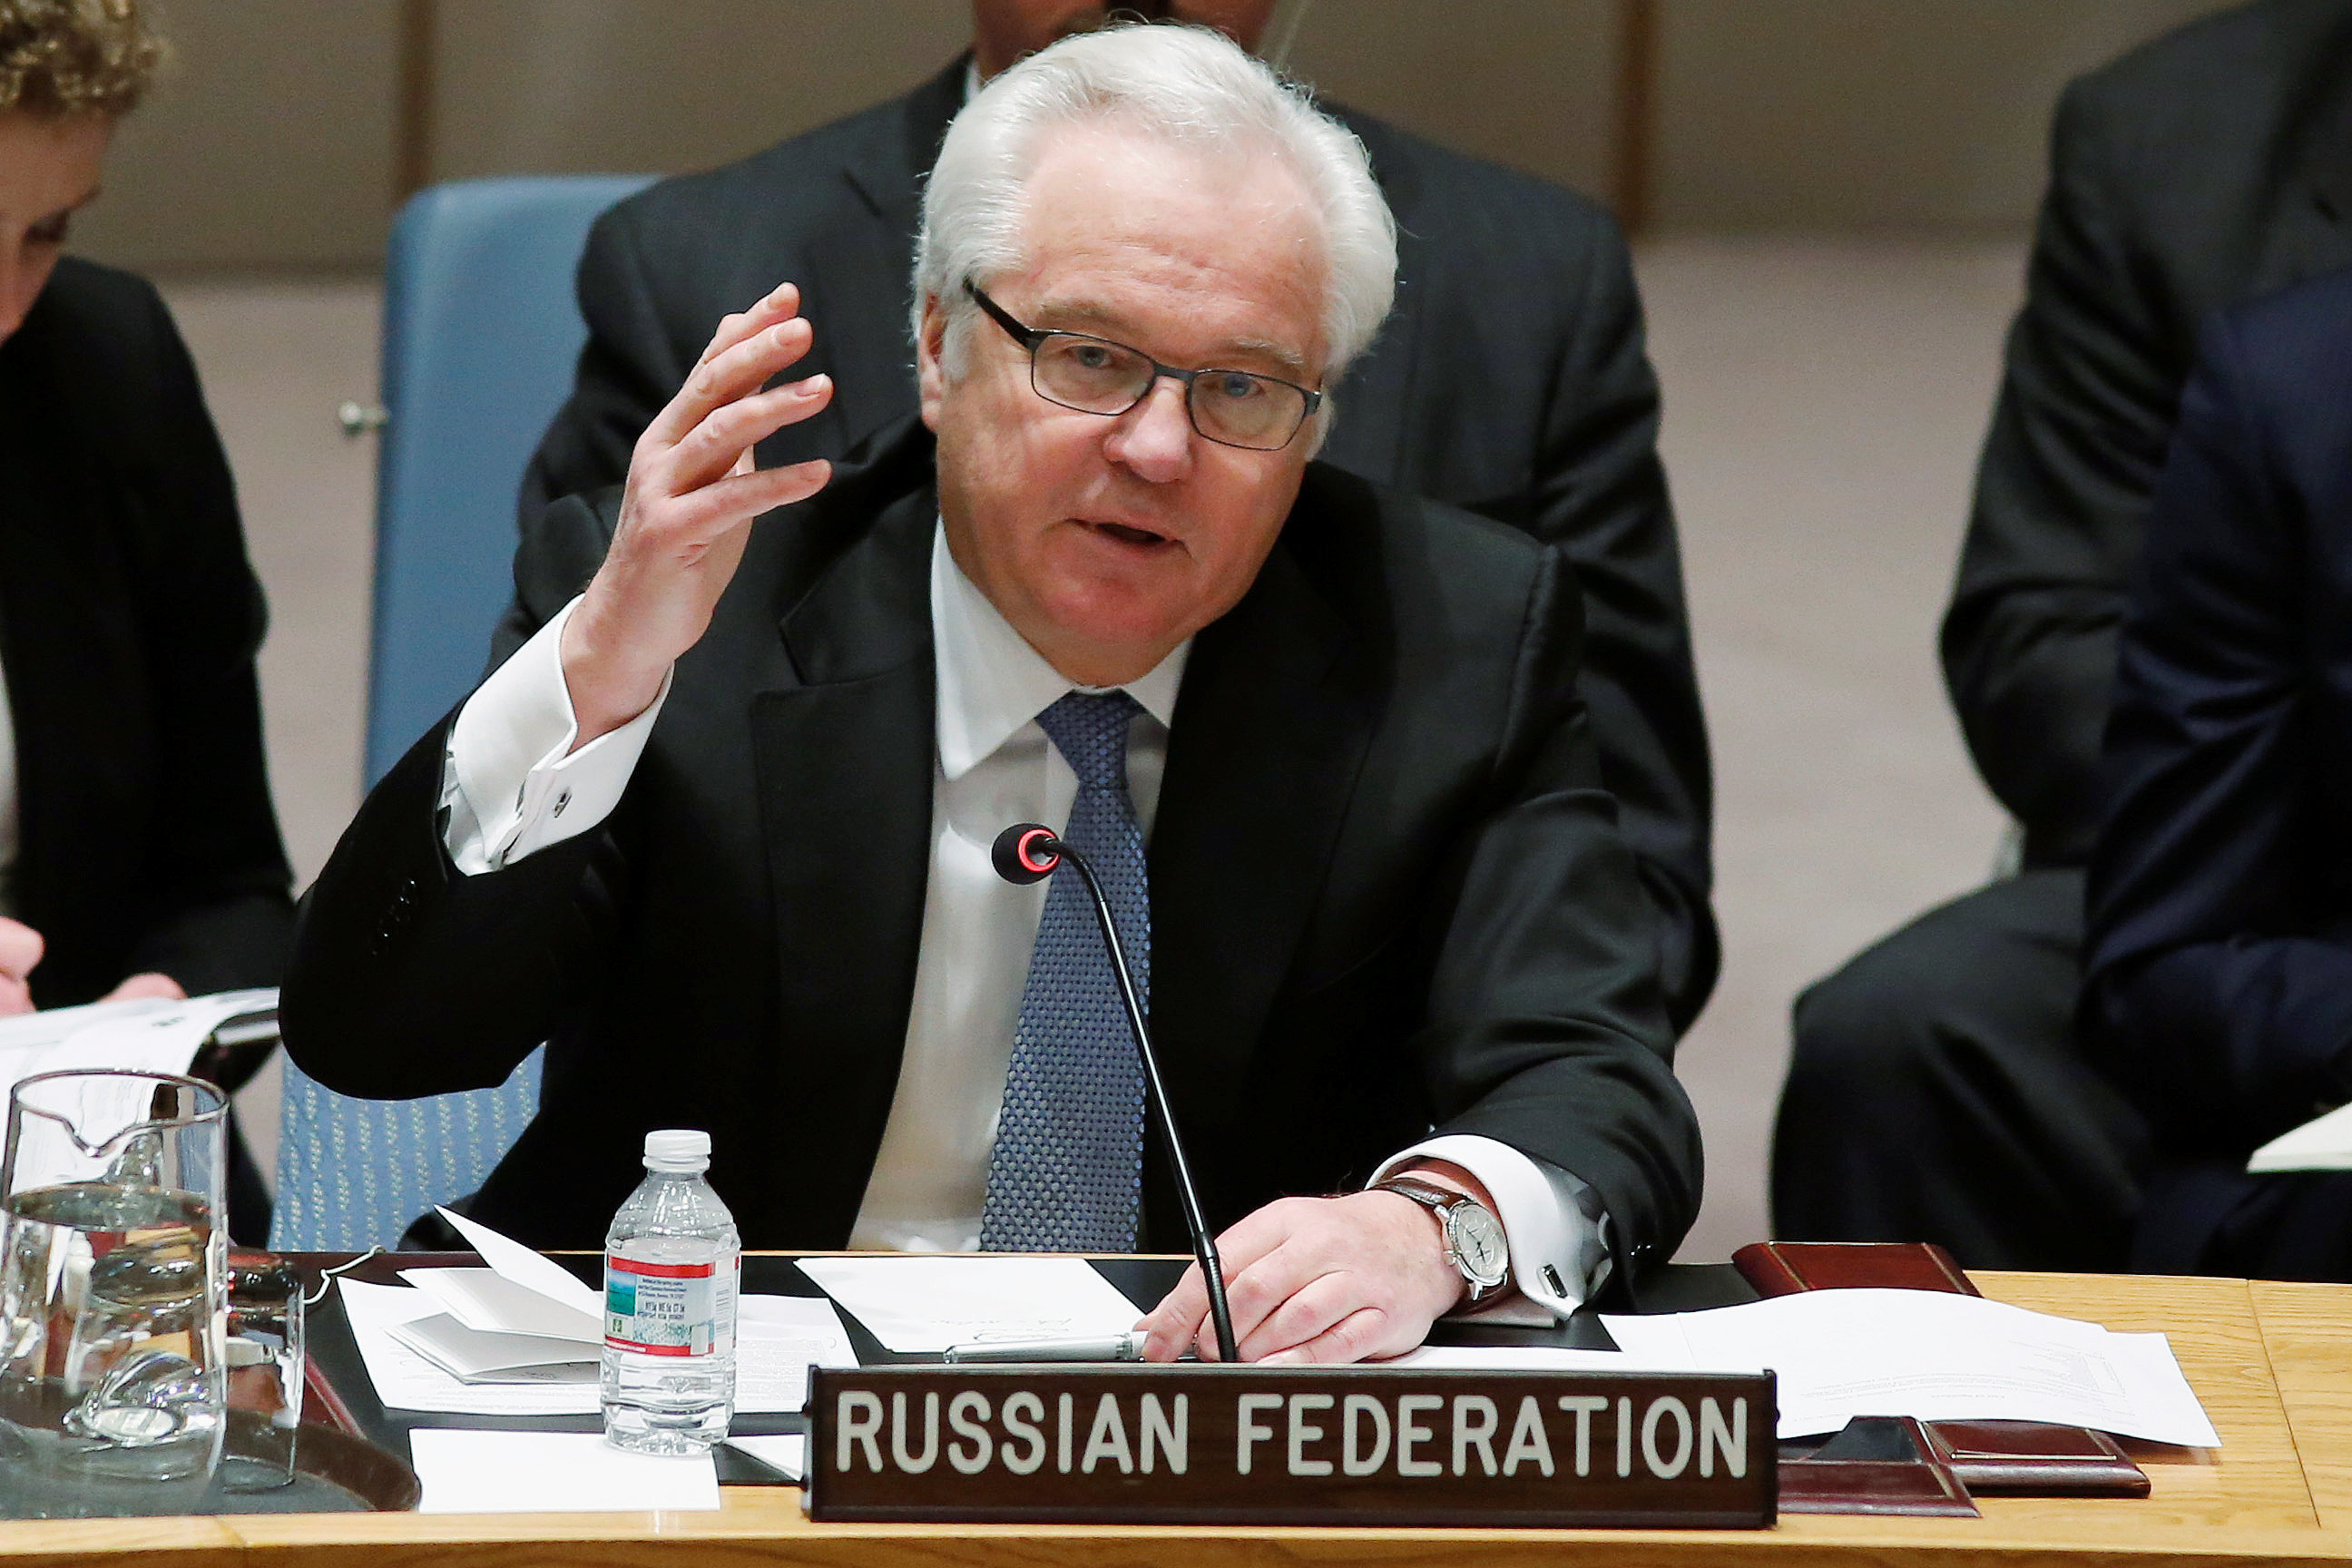 Russian Ambassador to the United Nations Vitaly Churkin addresses members of the U.N. Security Council during a meeting about the Ukraine situation, at the U.N. headquarters in New York